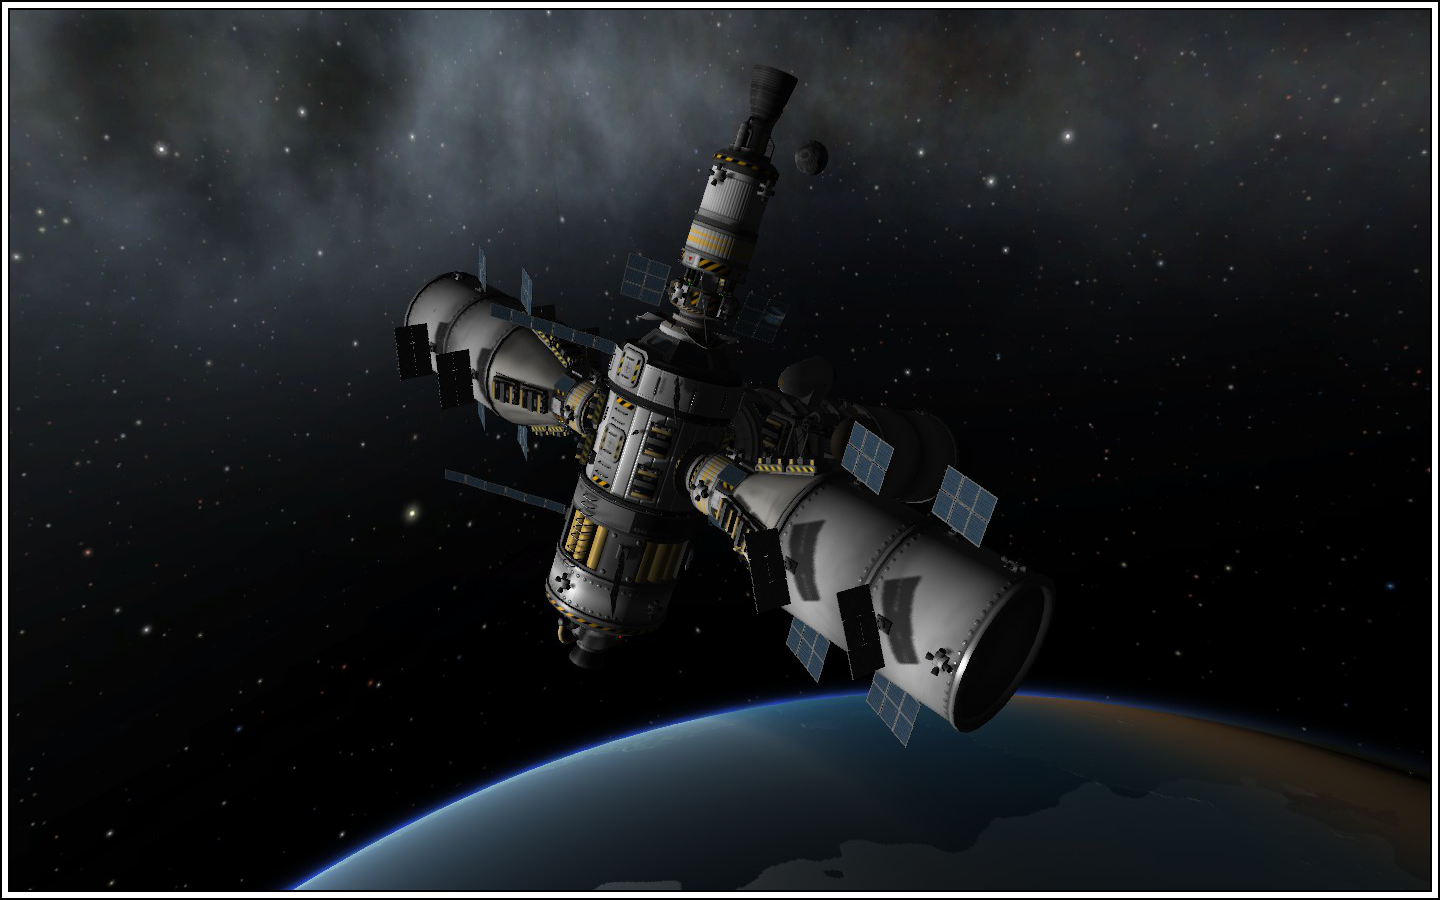 kerbal space program space station - photo #38